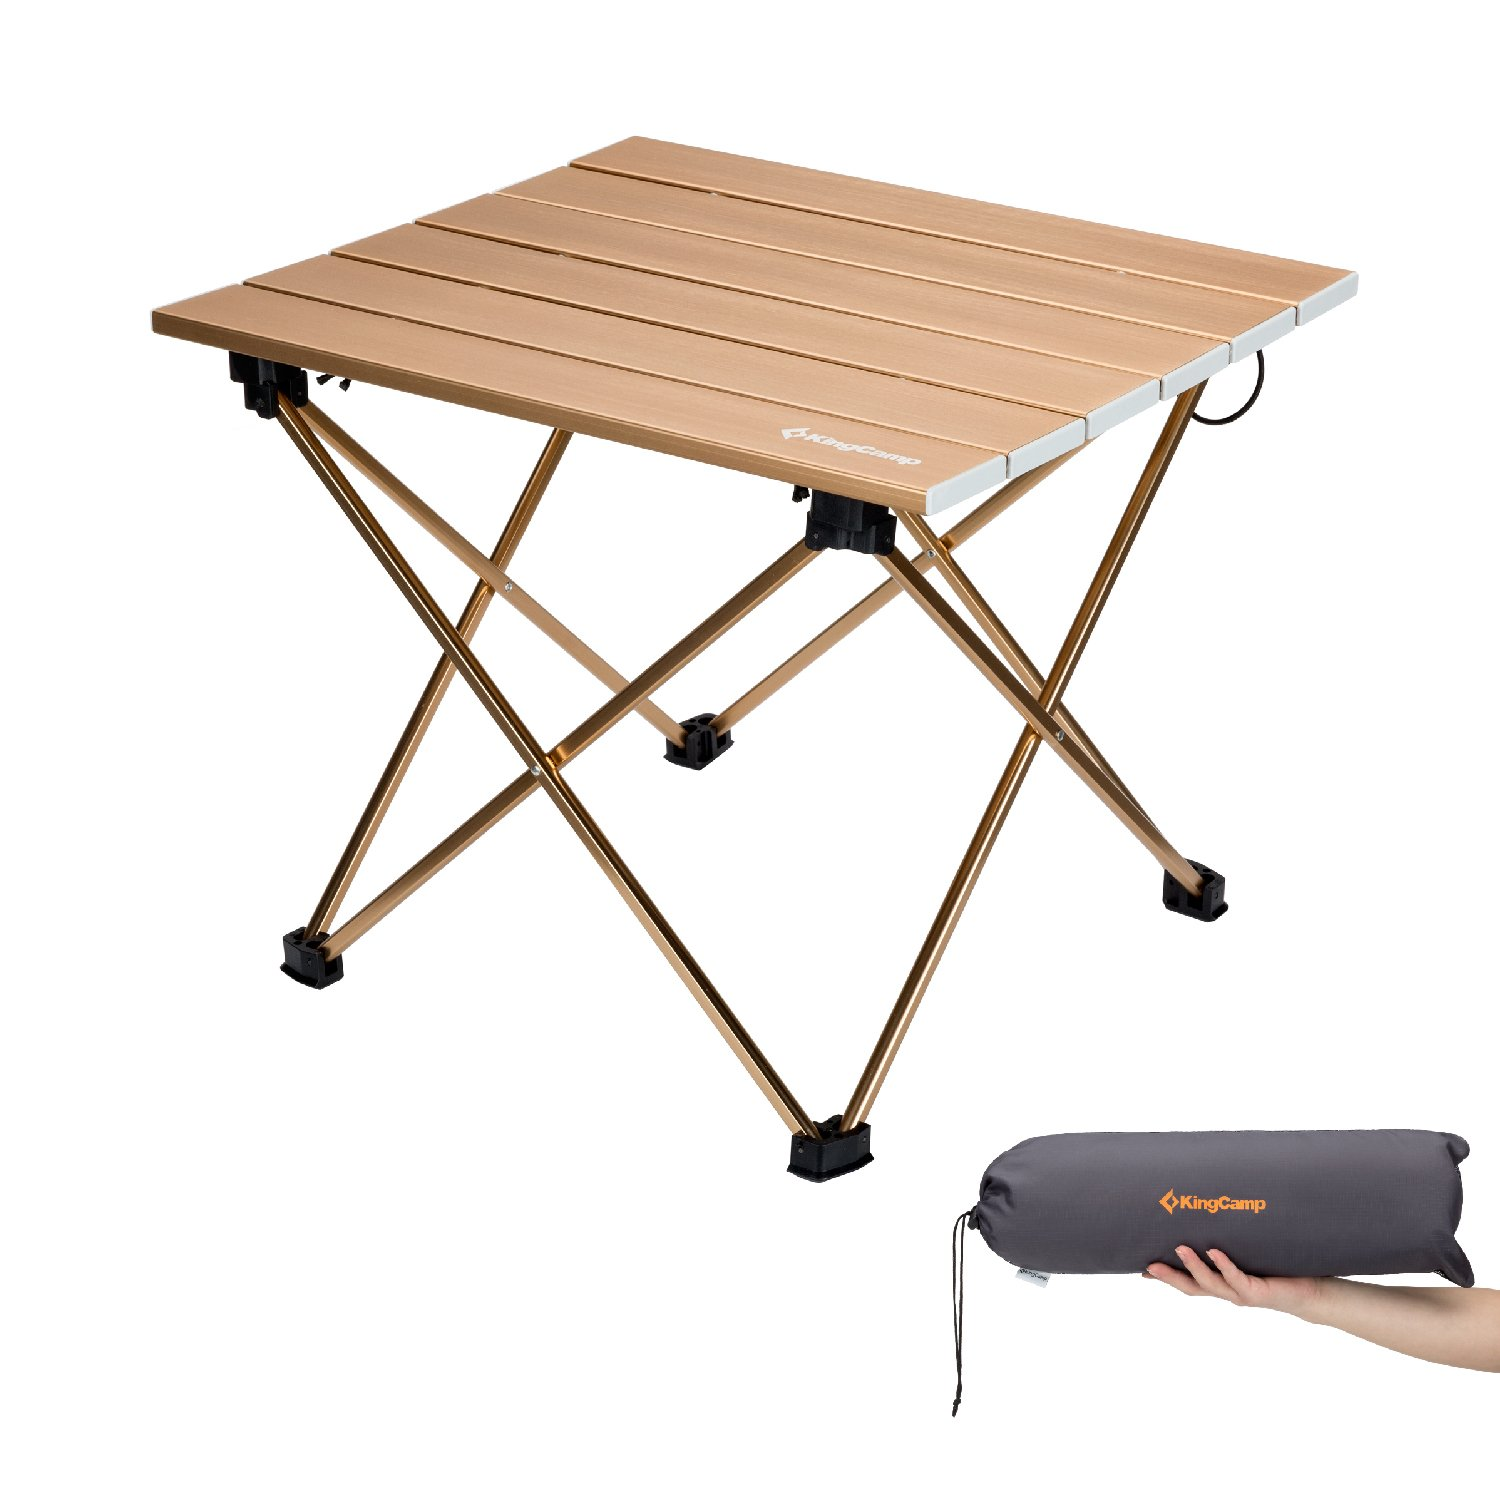 KingCamp Ultralight Compact Folding Camping Aluminum Table With Carry Bag,  Two Sizes